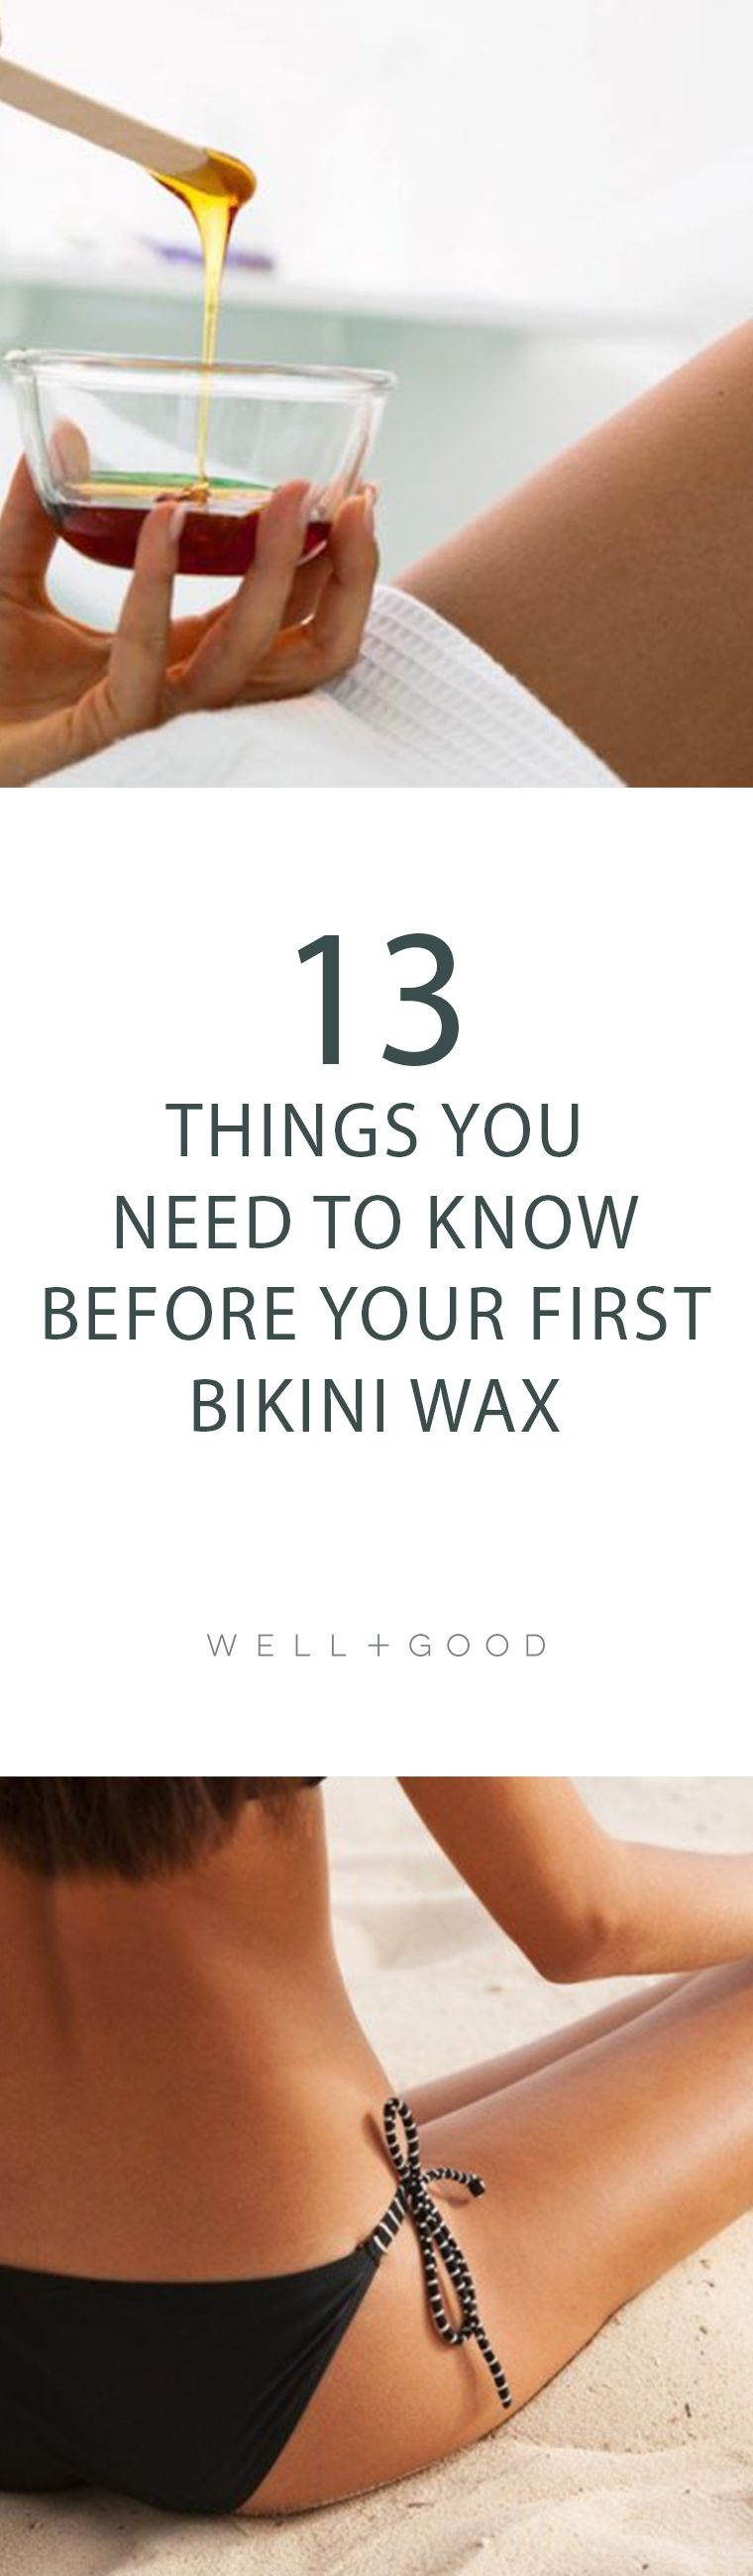 how to prep for a bikini wax | natural beauty picks and tips